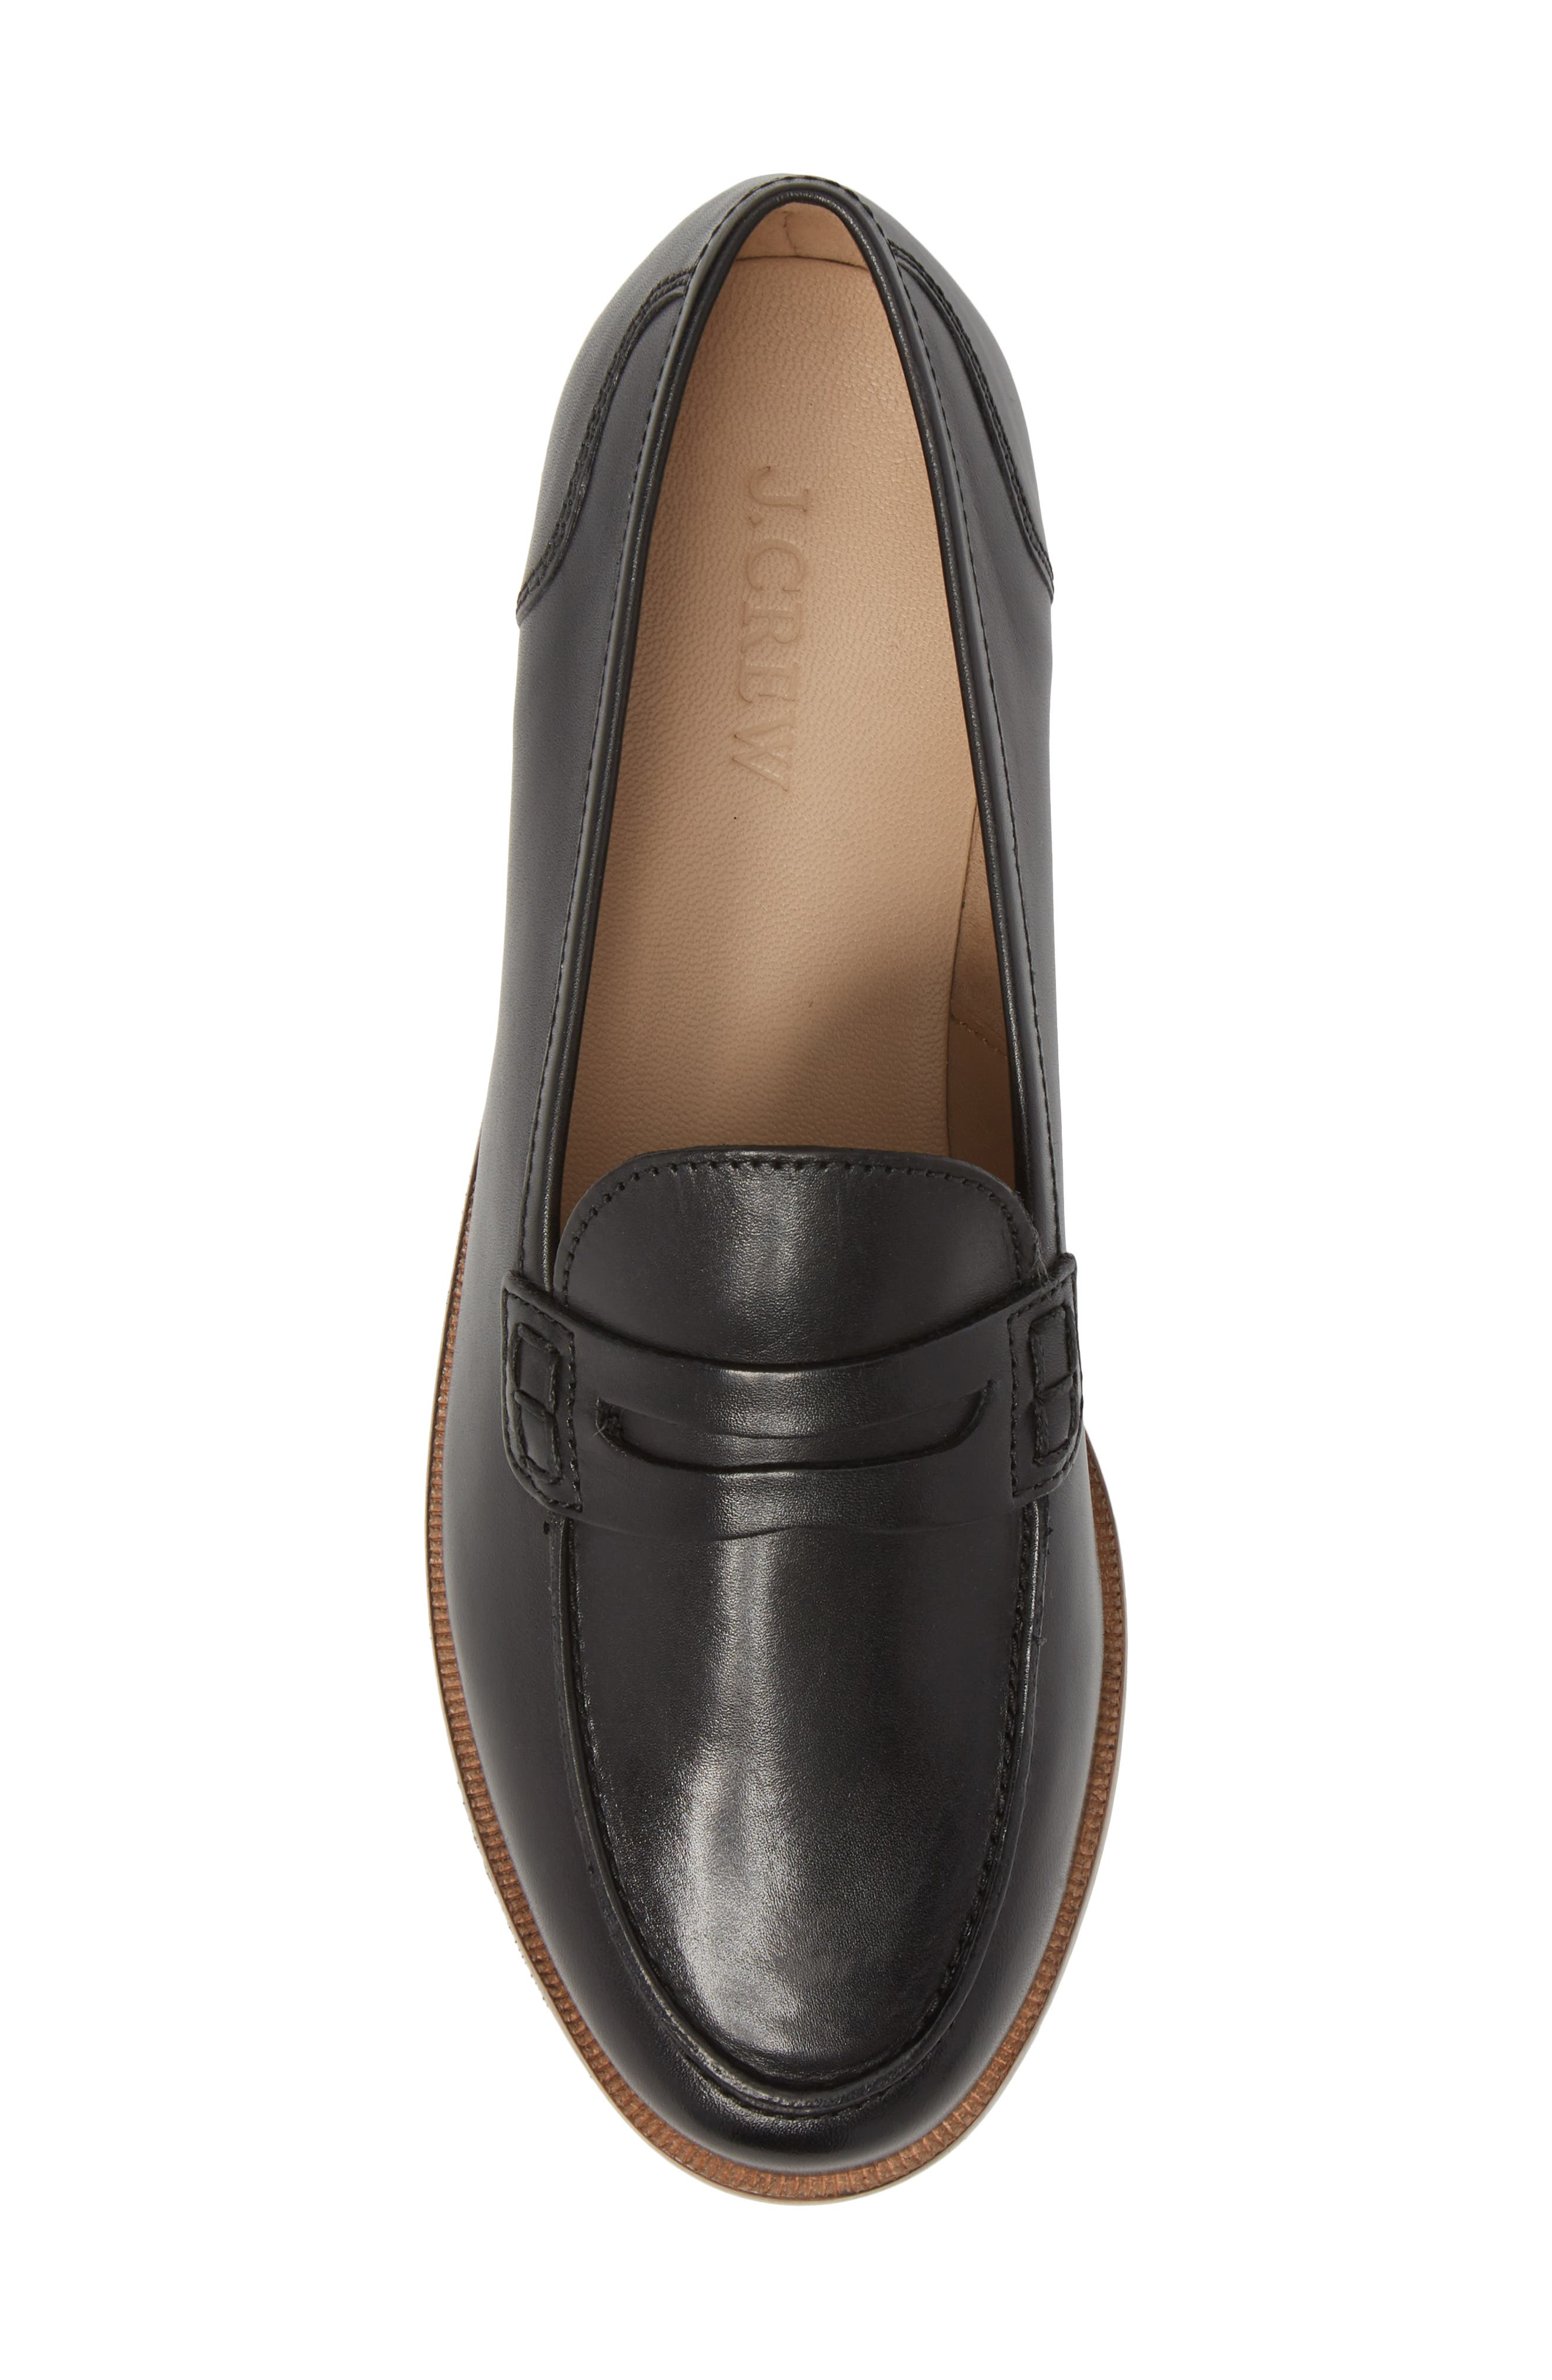 J.CREW, Ryan Penny Loafer, Alternate thumbnail 5, color, BLACK LEATHER